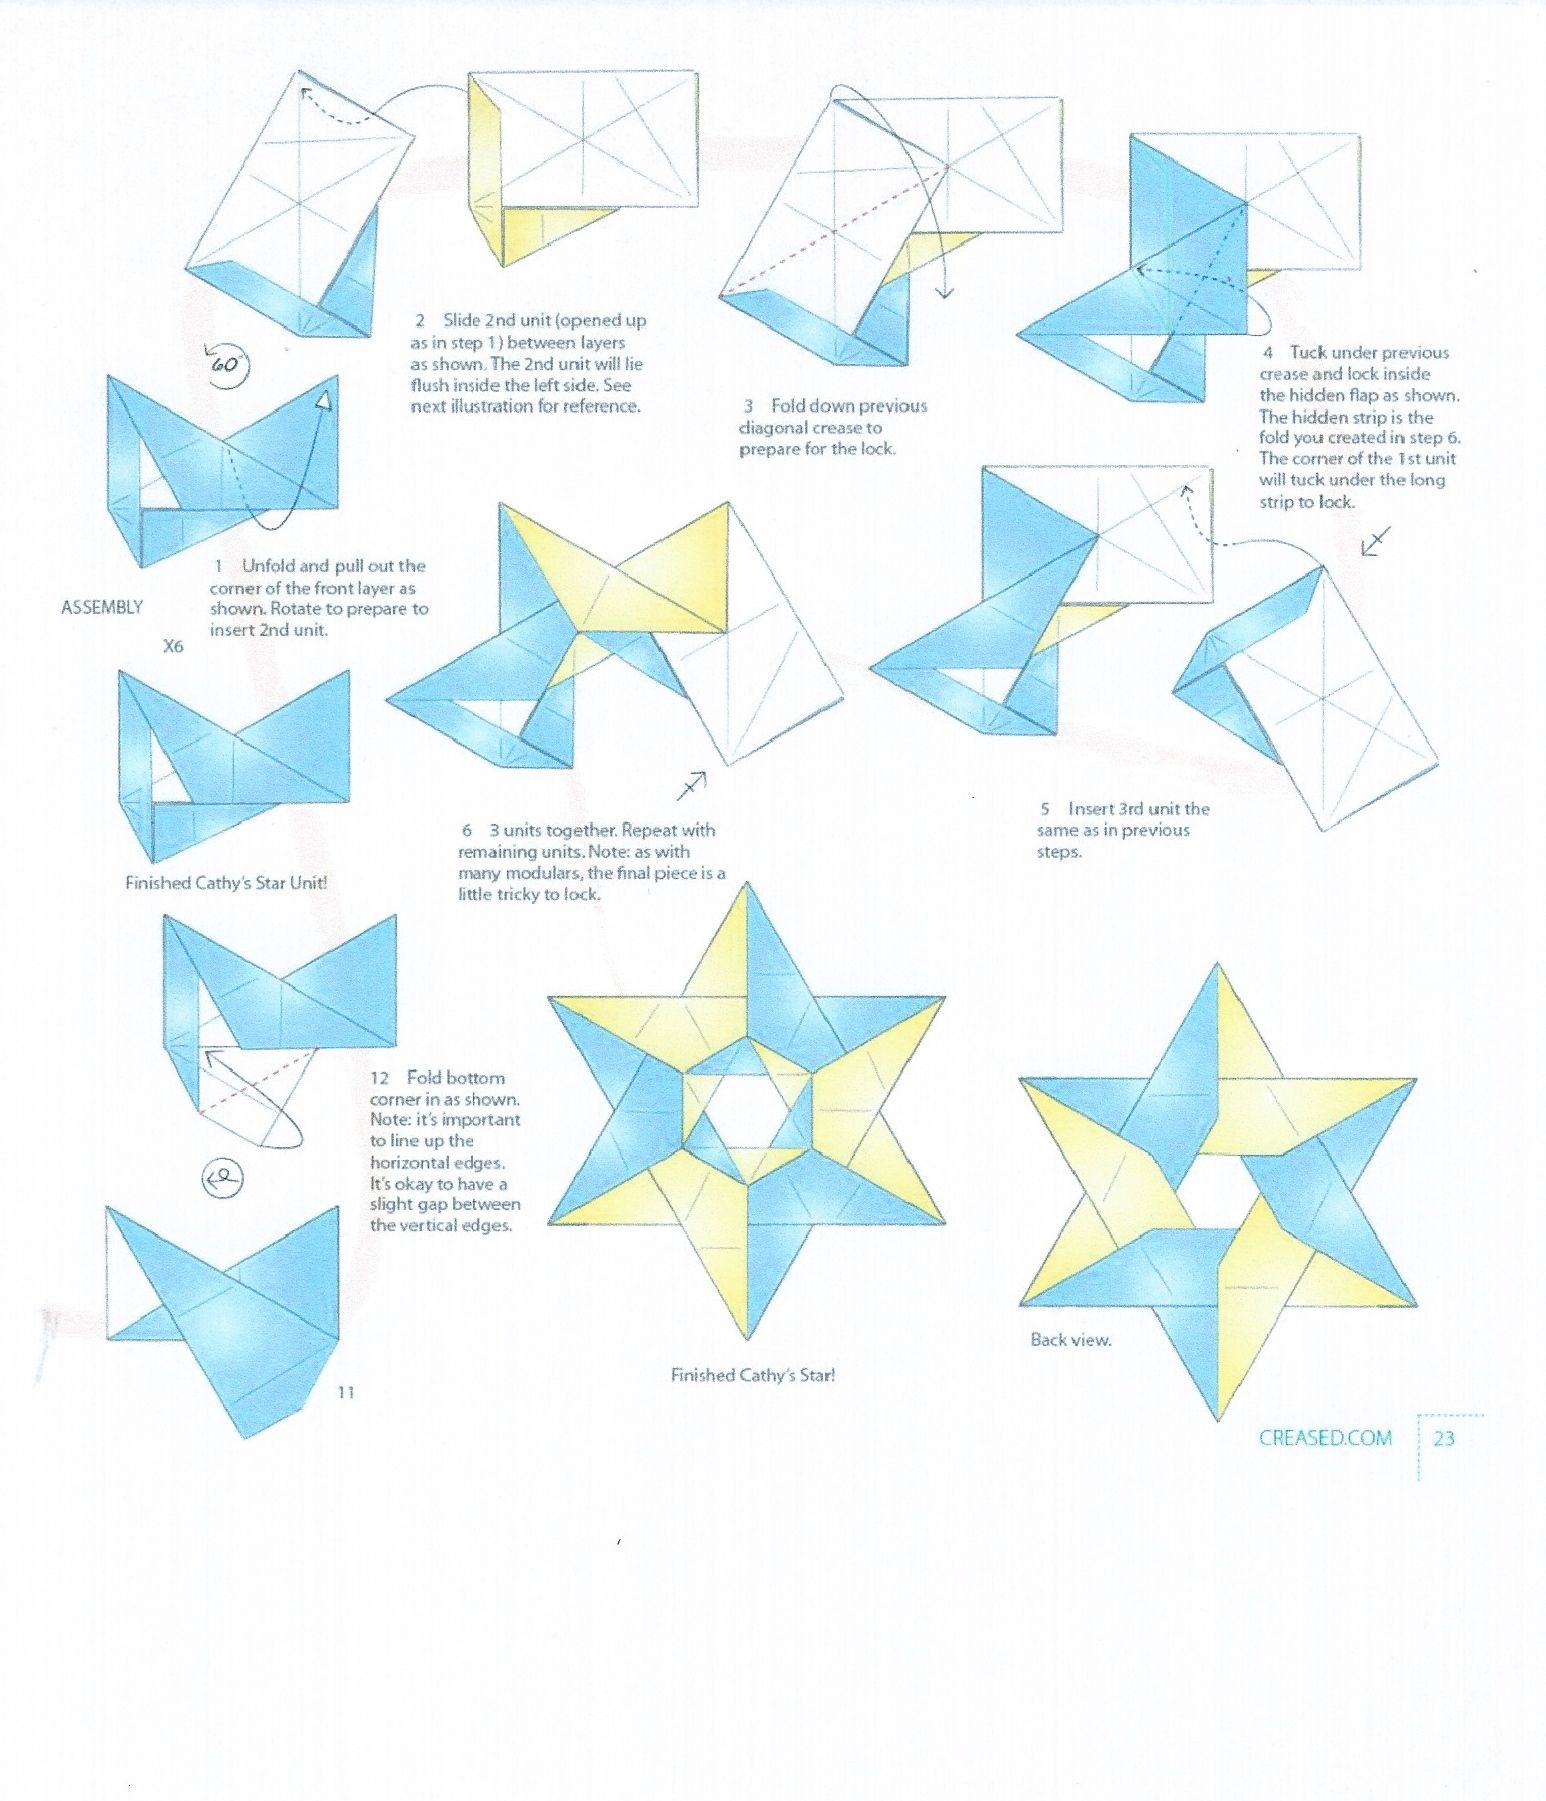 Origami Diagram For Cathys Star